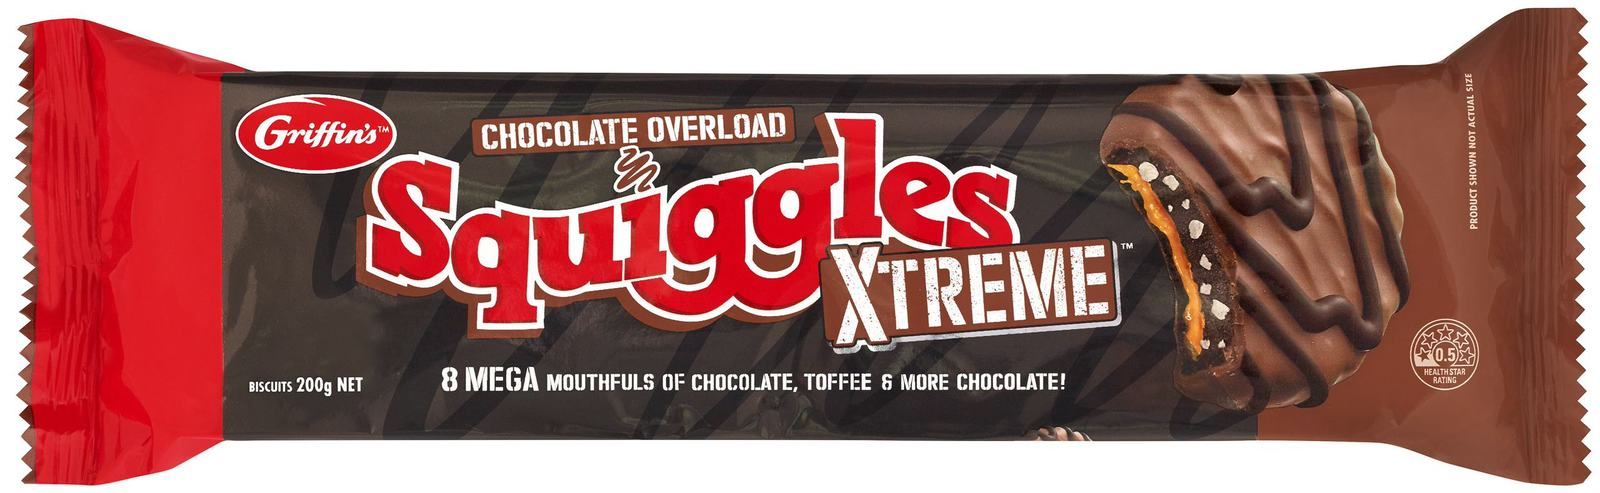 Griffins Squiggles Xtreme Chocolate Overload (200g) image